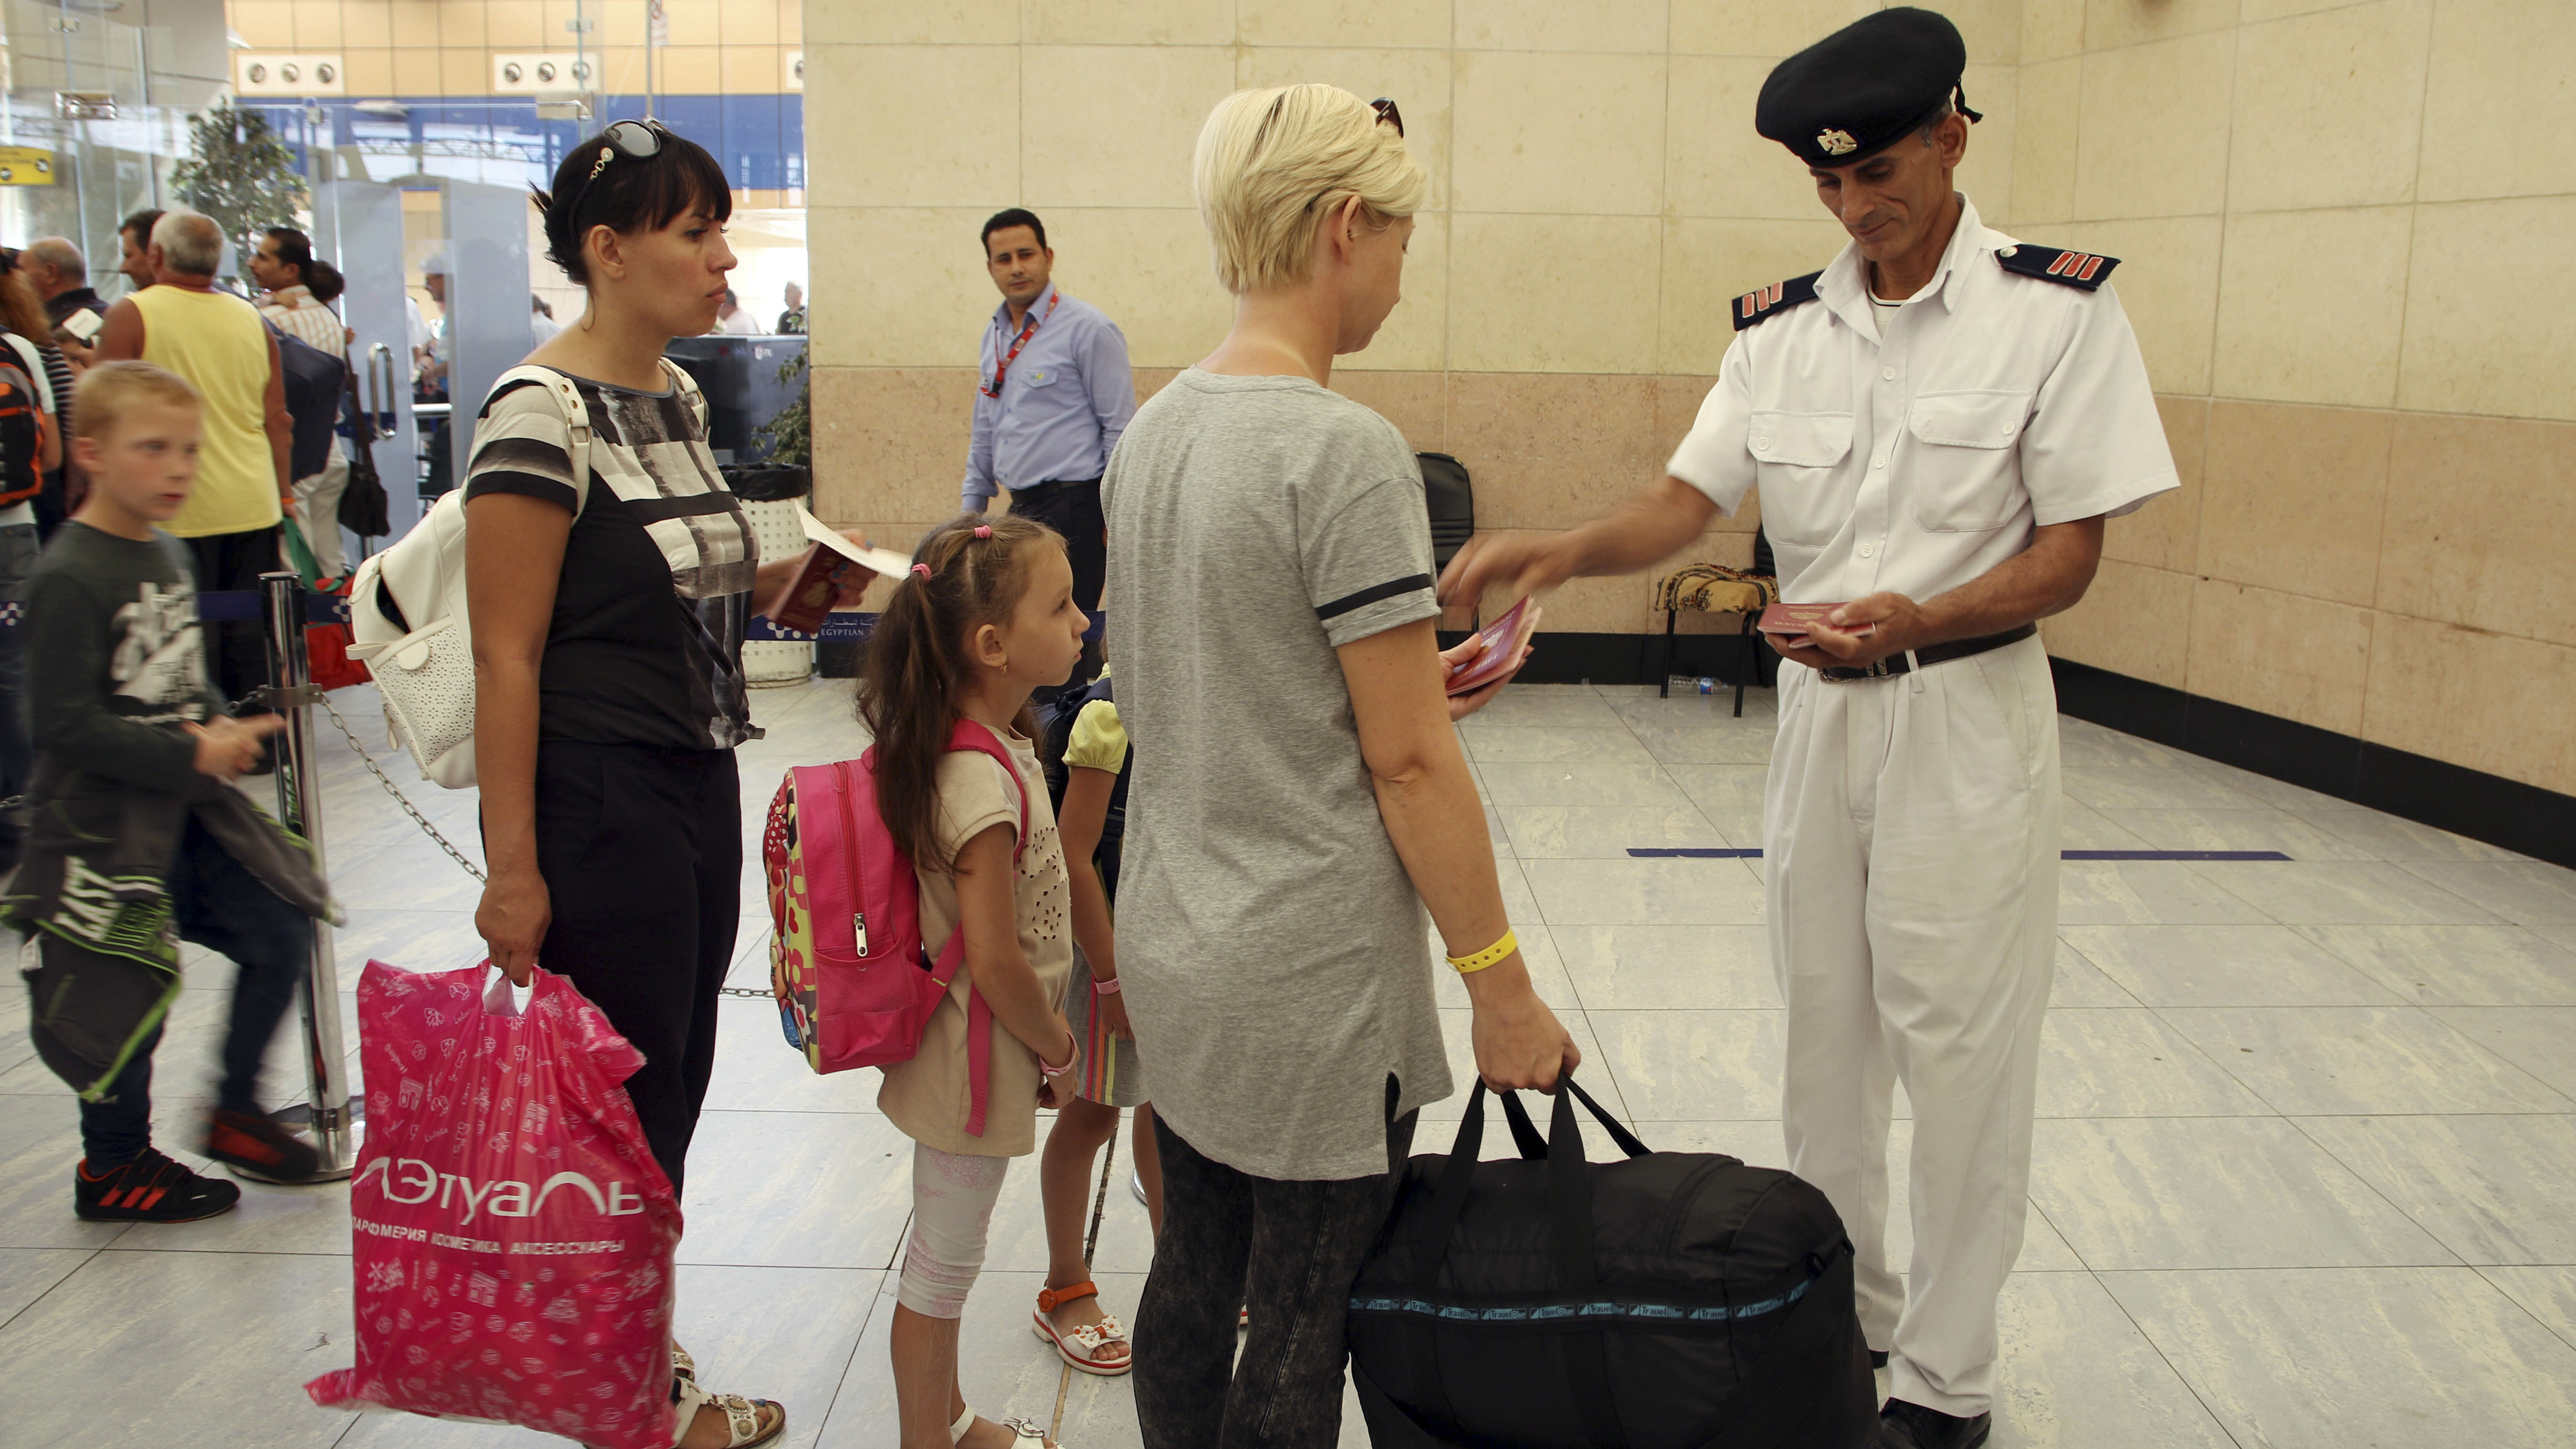 Tourists have their documents checked by Egyptian police as they prepare to be evacuated from Sharm el-Sheikh airport, south Sinai, Egypt, Friday, Nov. 6, 2015. Egyptian police carried out detailed security checks on Friday at the airport in Sharm el-Sheikh, the resort from where the doomed Russian plane took off last weekend, after U.K. officials confirmed that flights will start bringing stranded British tourists home from the Sinai Peninsula.